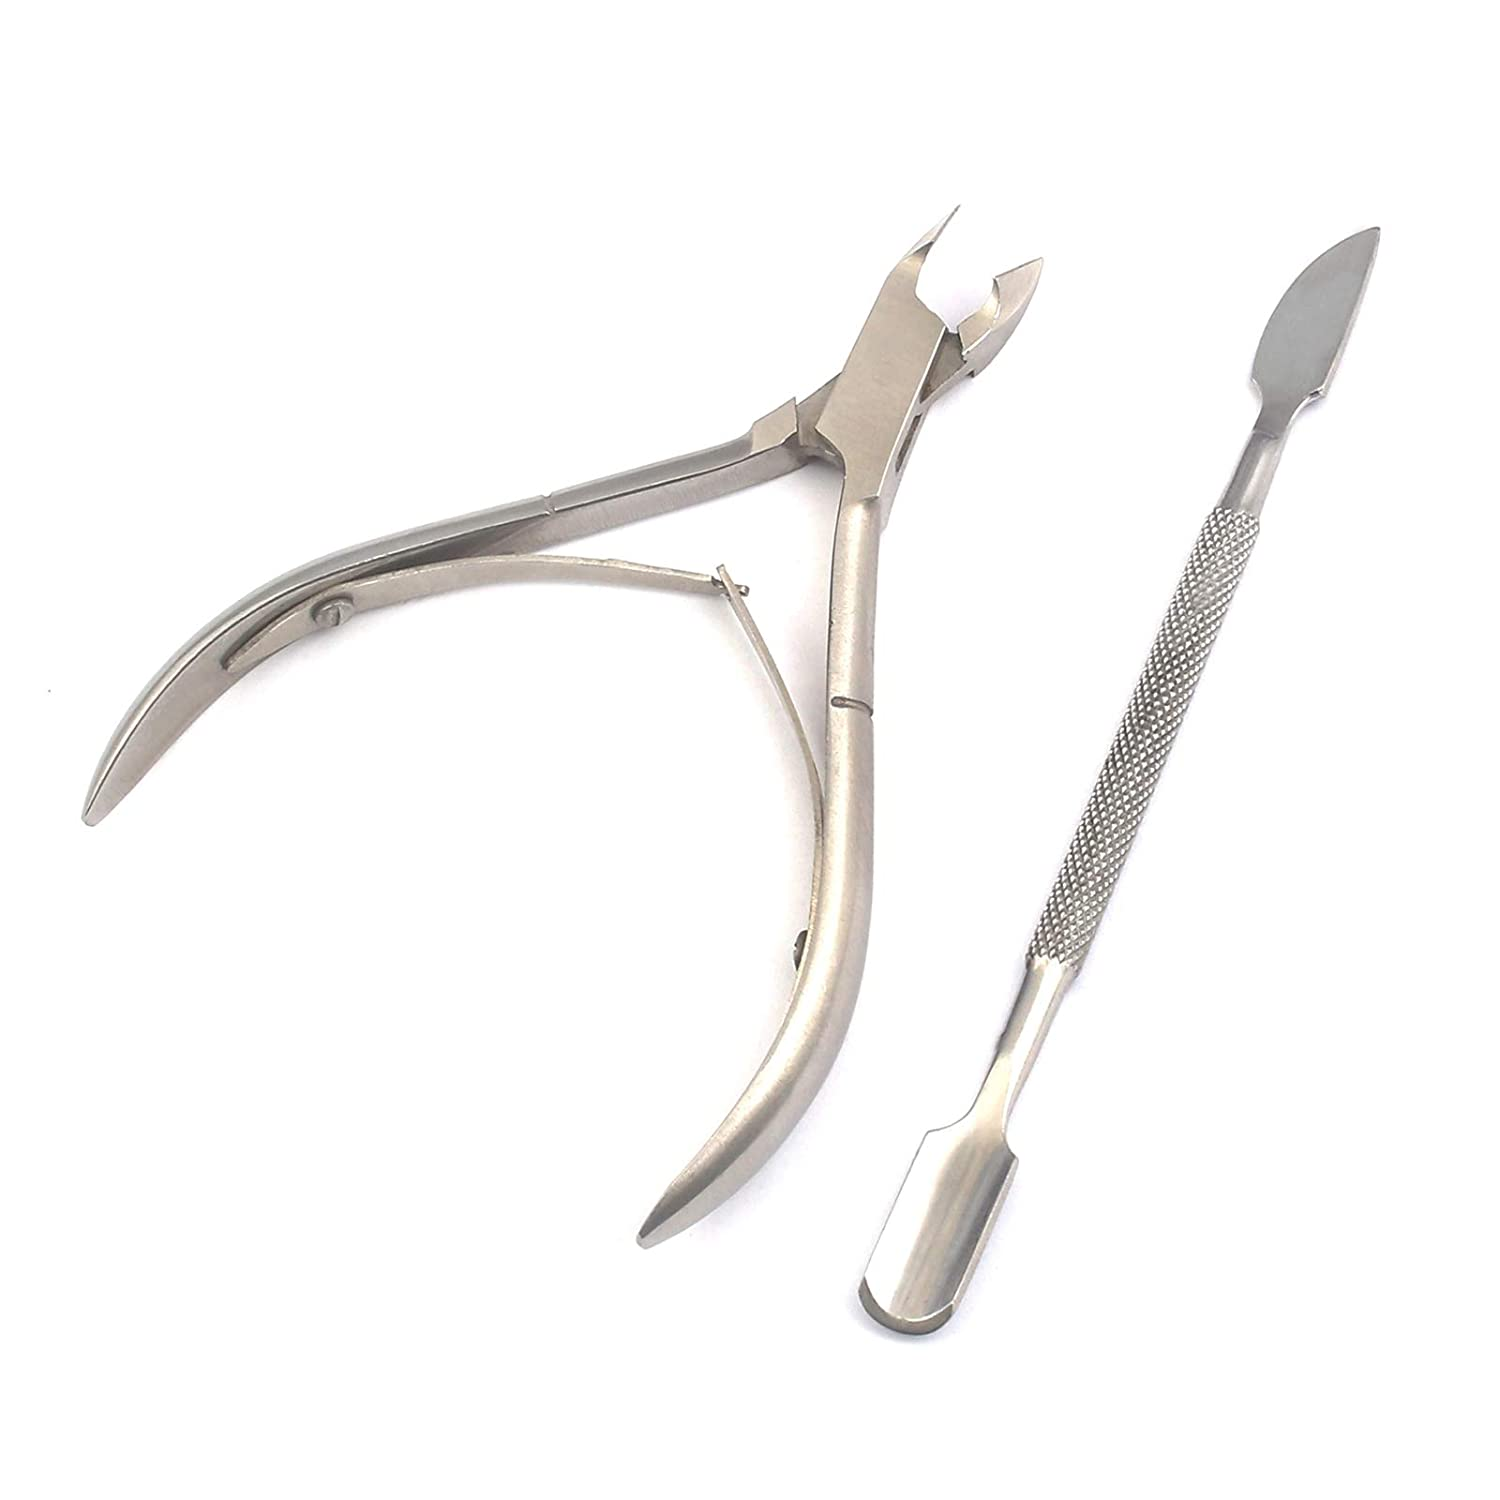 CUTICLE NIPPER AND CUTICLE PUSHER - SURGI GRADE STAINLESS STEEL CUTICLE REMOVER AND CUTTER - DURABLE MANICURE, PEDICURE AND BEAUTY TOOL FOR IDEAL FINGERNAILS AND TOENAILS - BY DDP (SET)